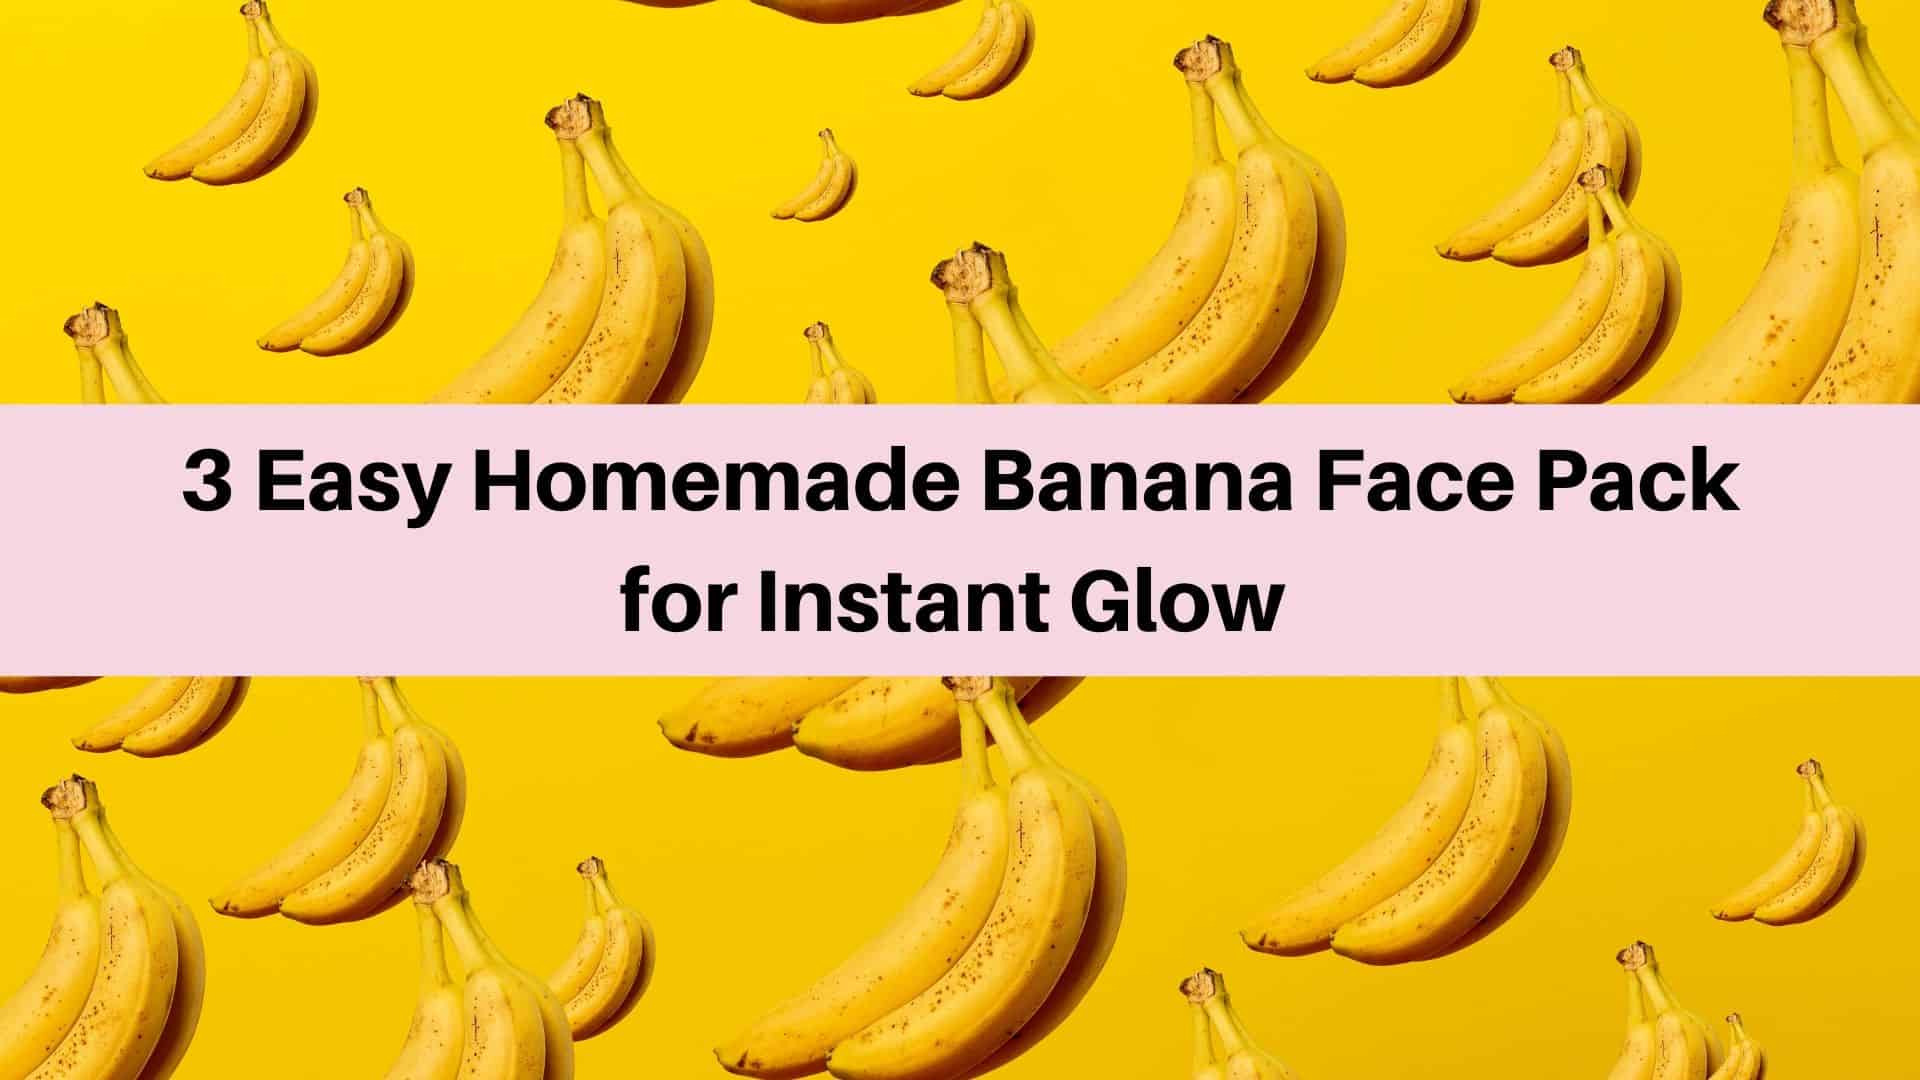 3 Easy Homemade Banana Face Pack for Instant Glow